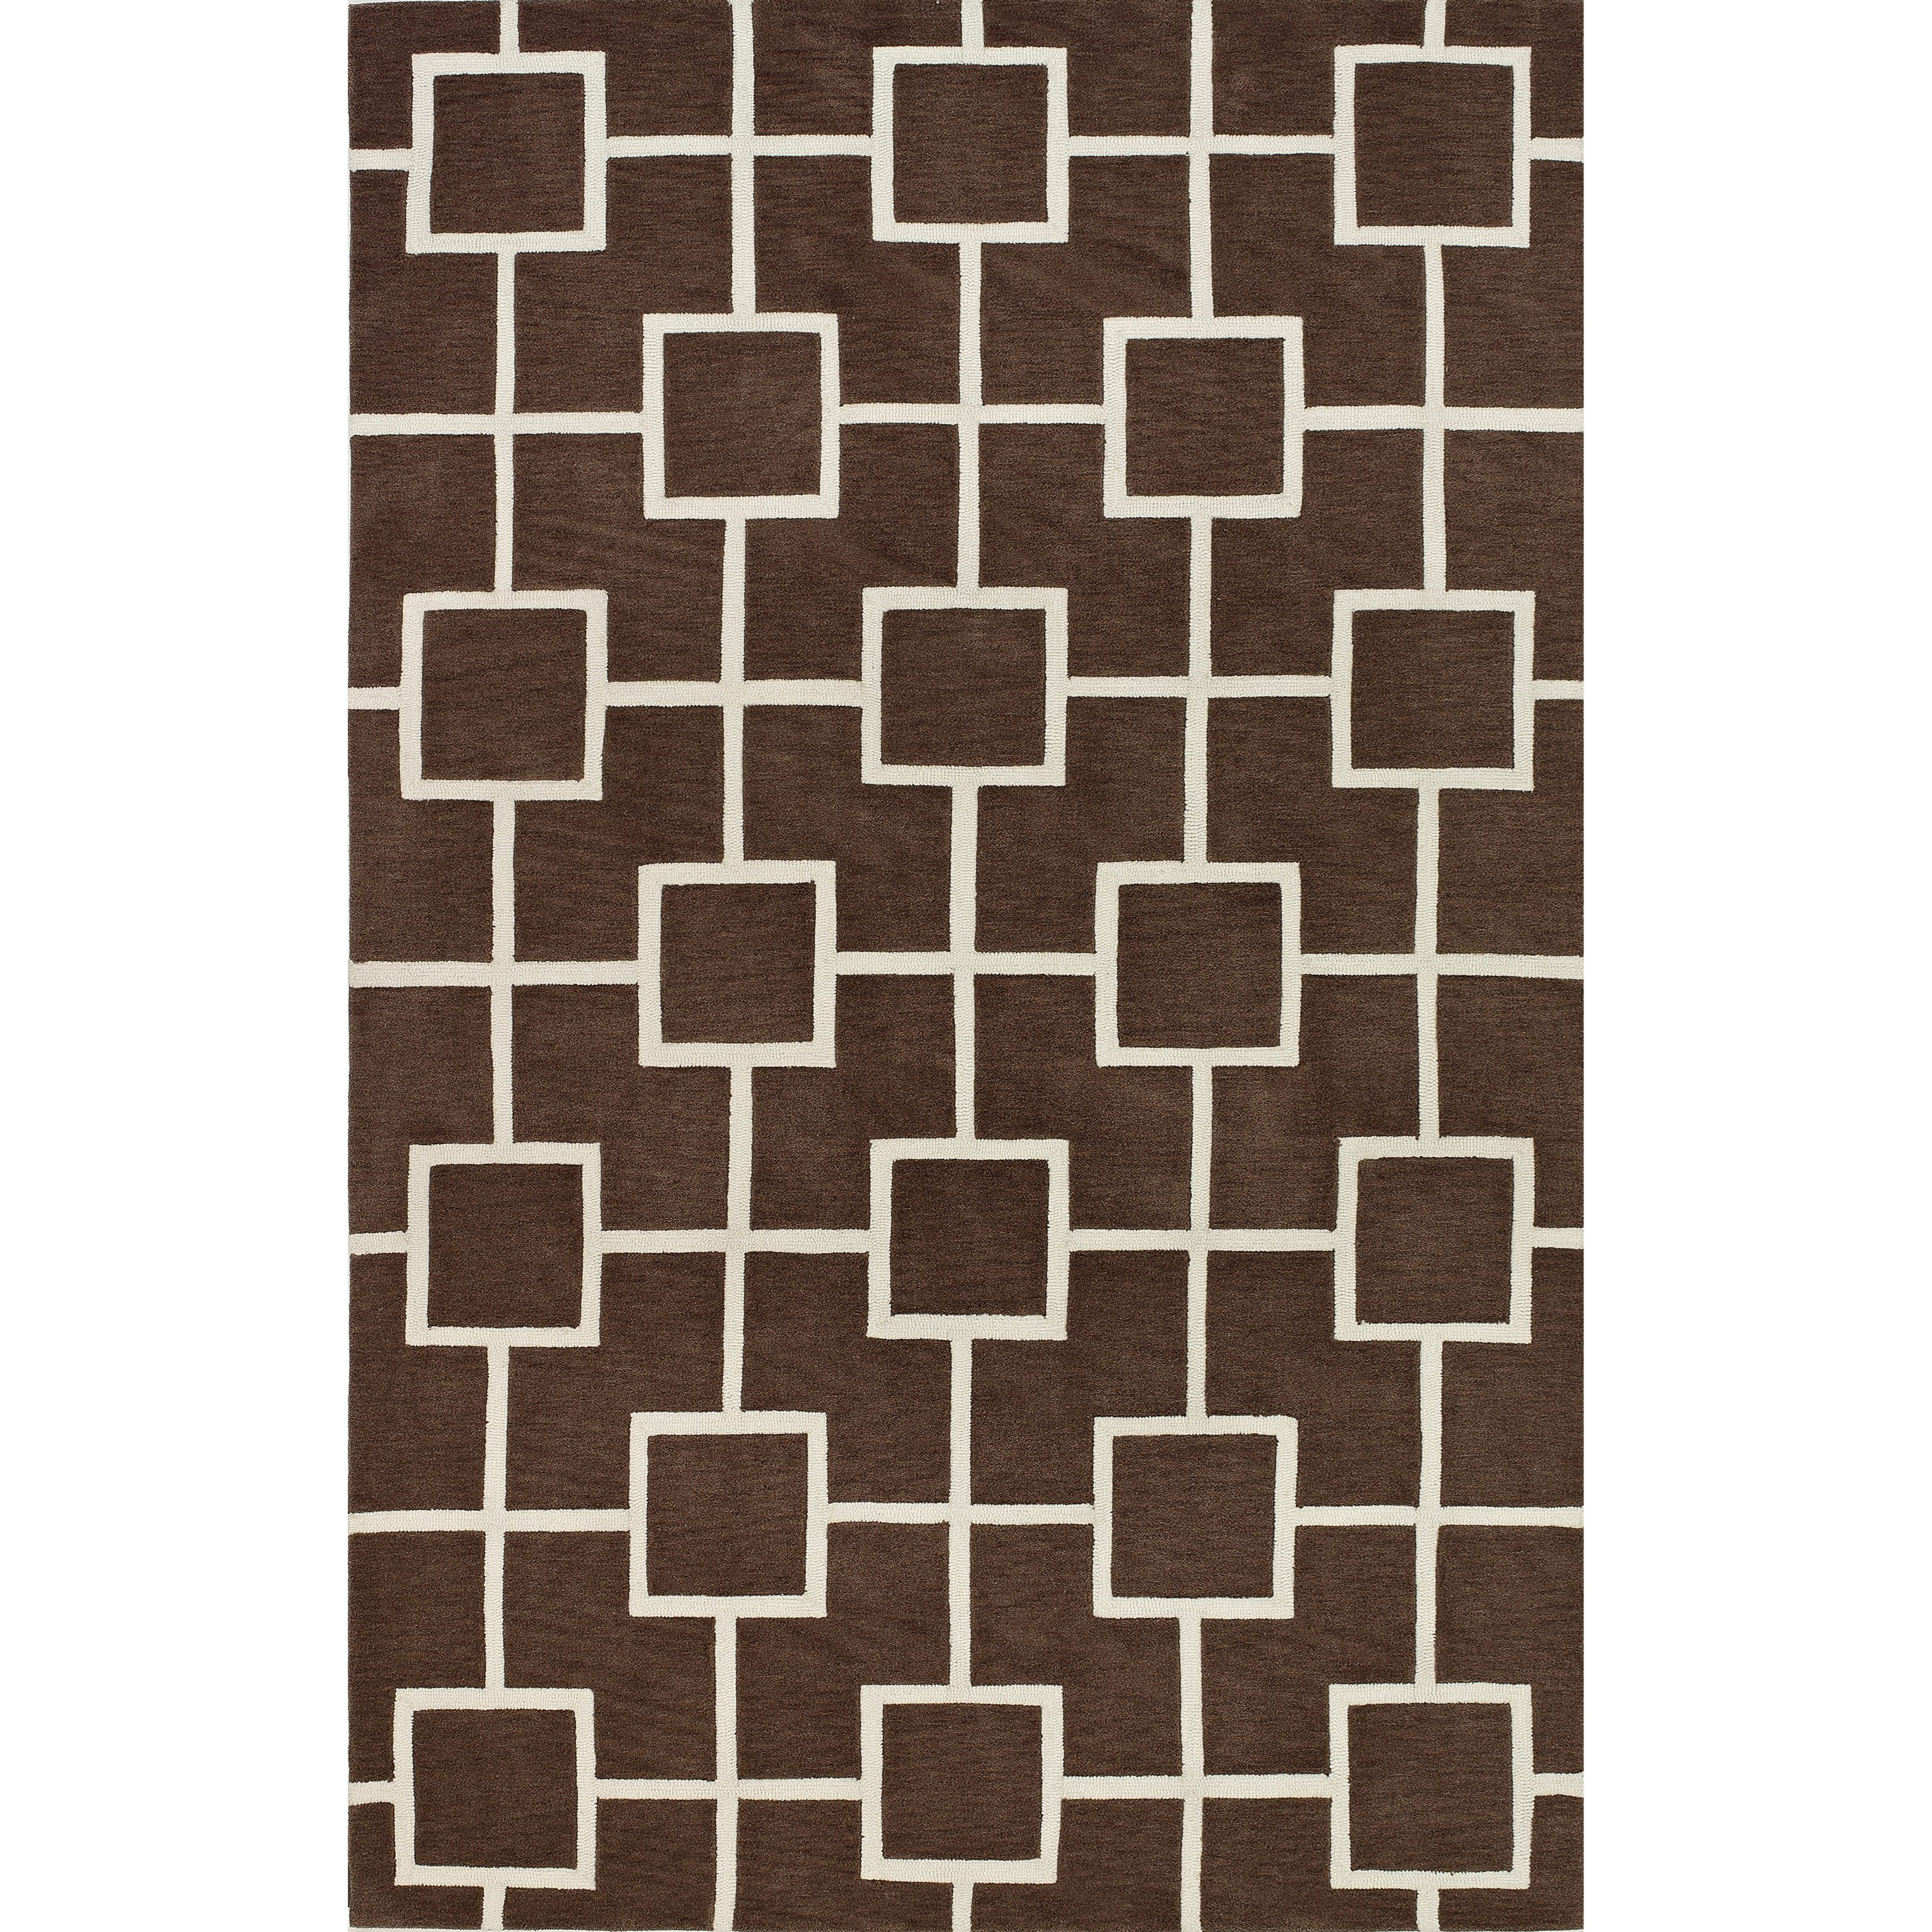 Dalyn Infinity Mocha 9'X13' Rug - Item Number: IF4MO9X13